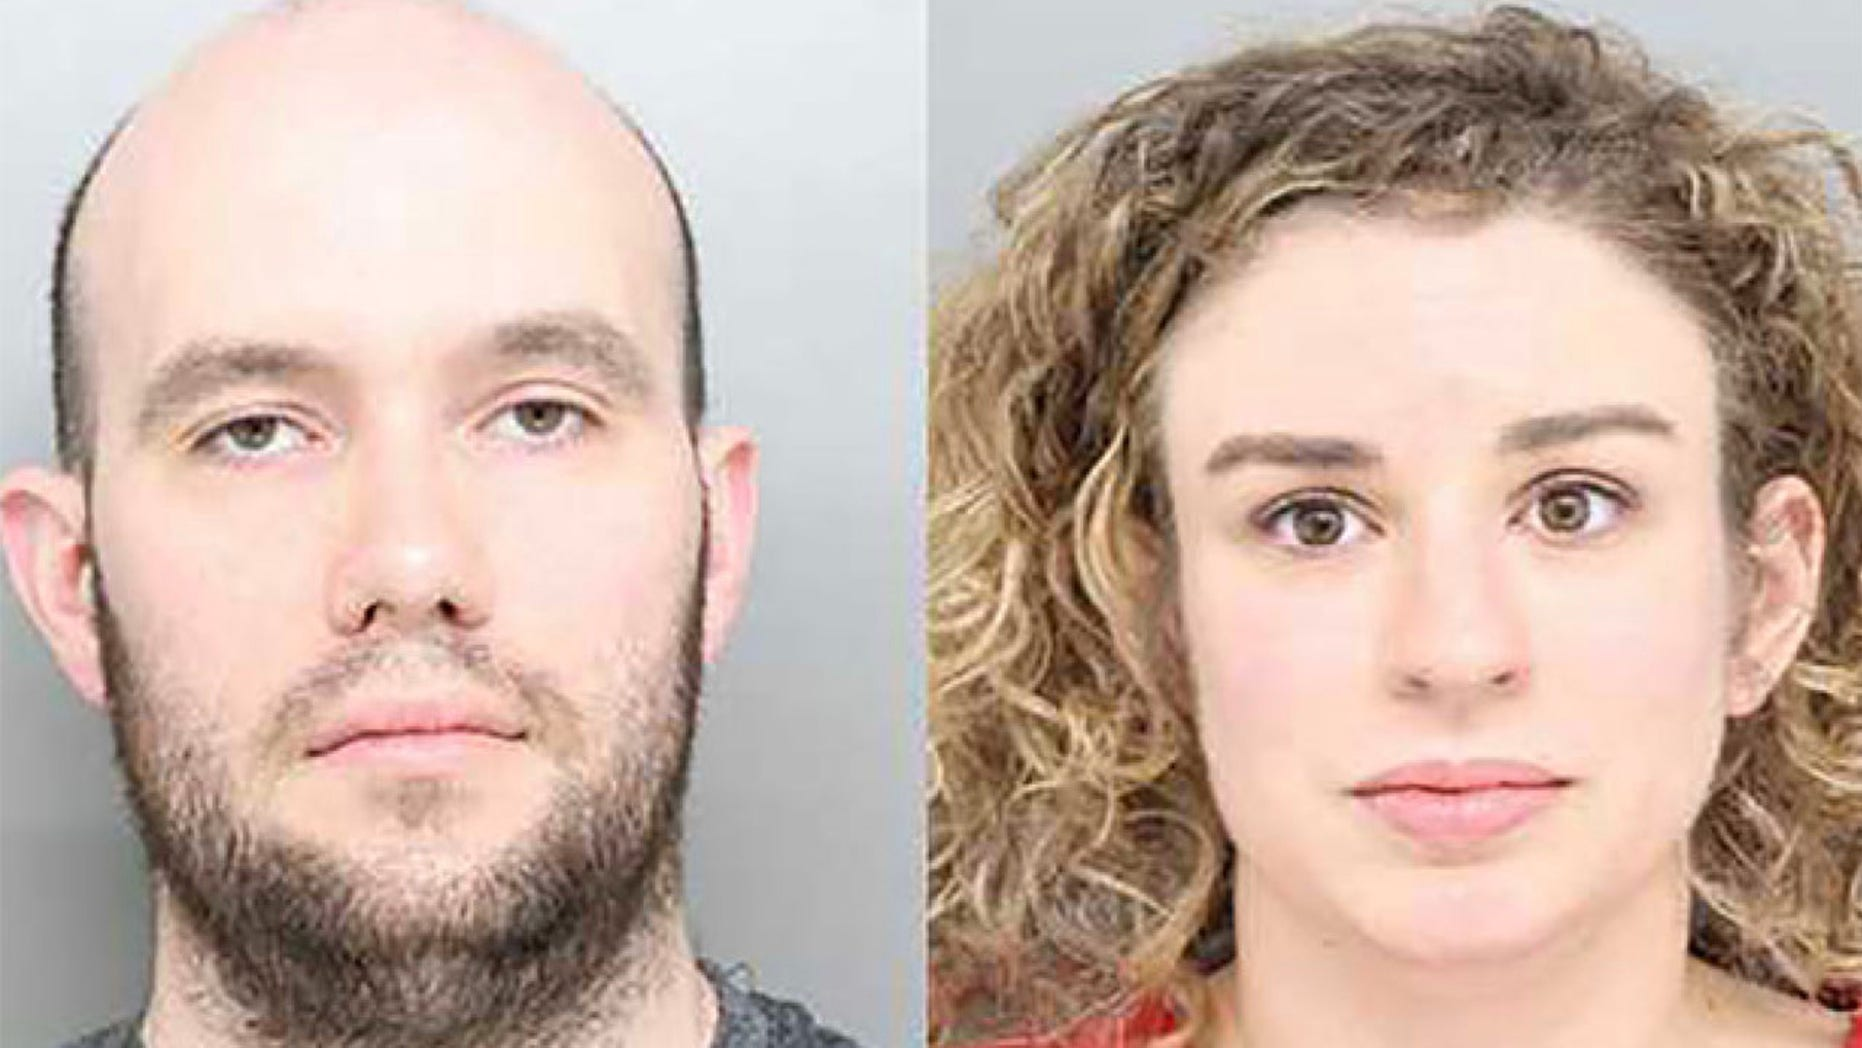 Michael Mathisen, 30, (l.) and Lauren Wilder, 31, have been accused by cops of having sex in public on the Cincinnati Ferris Wheel Thursday. (Hamilton County Sheriff's Office)